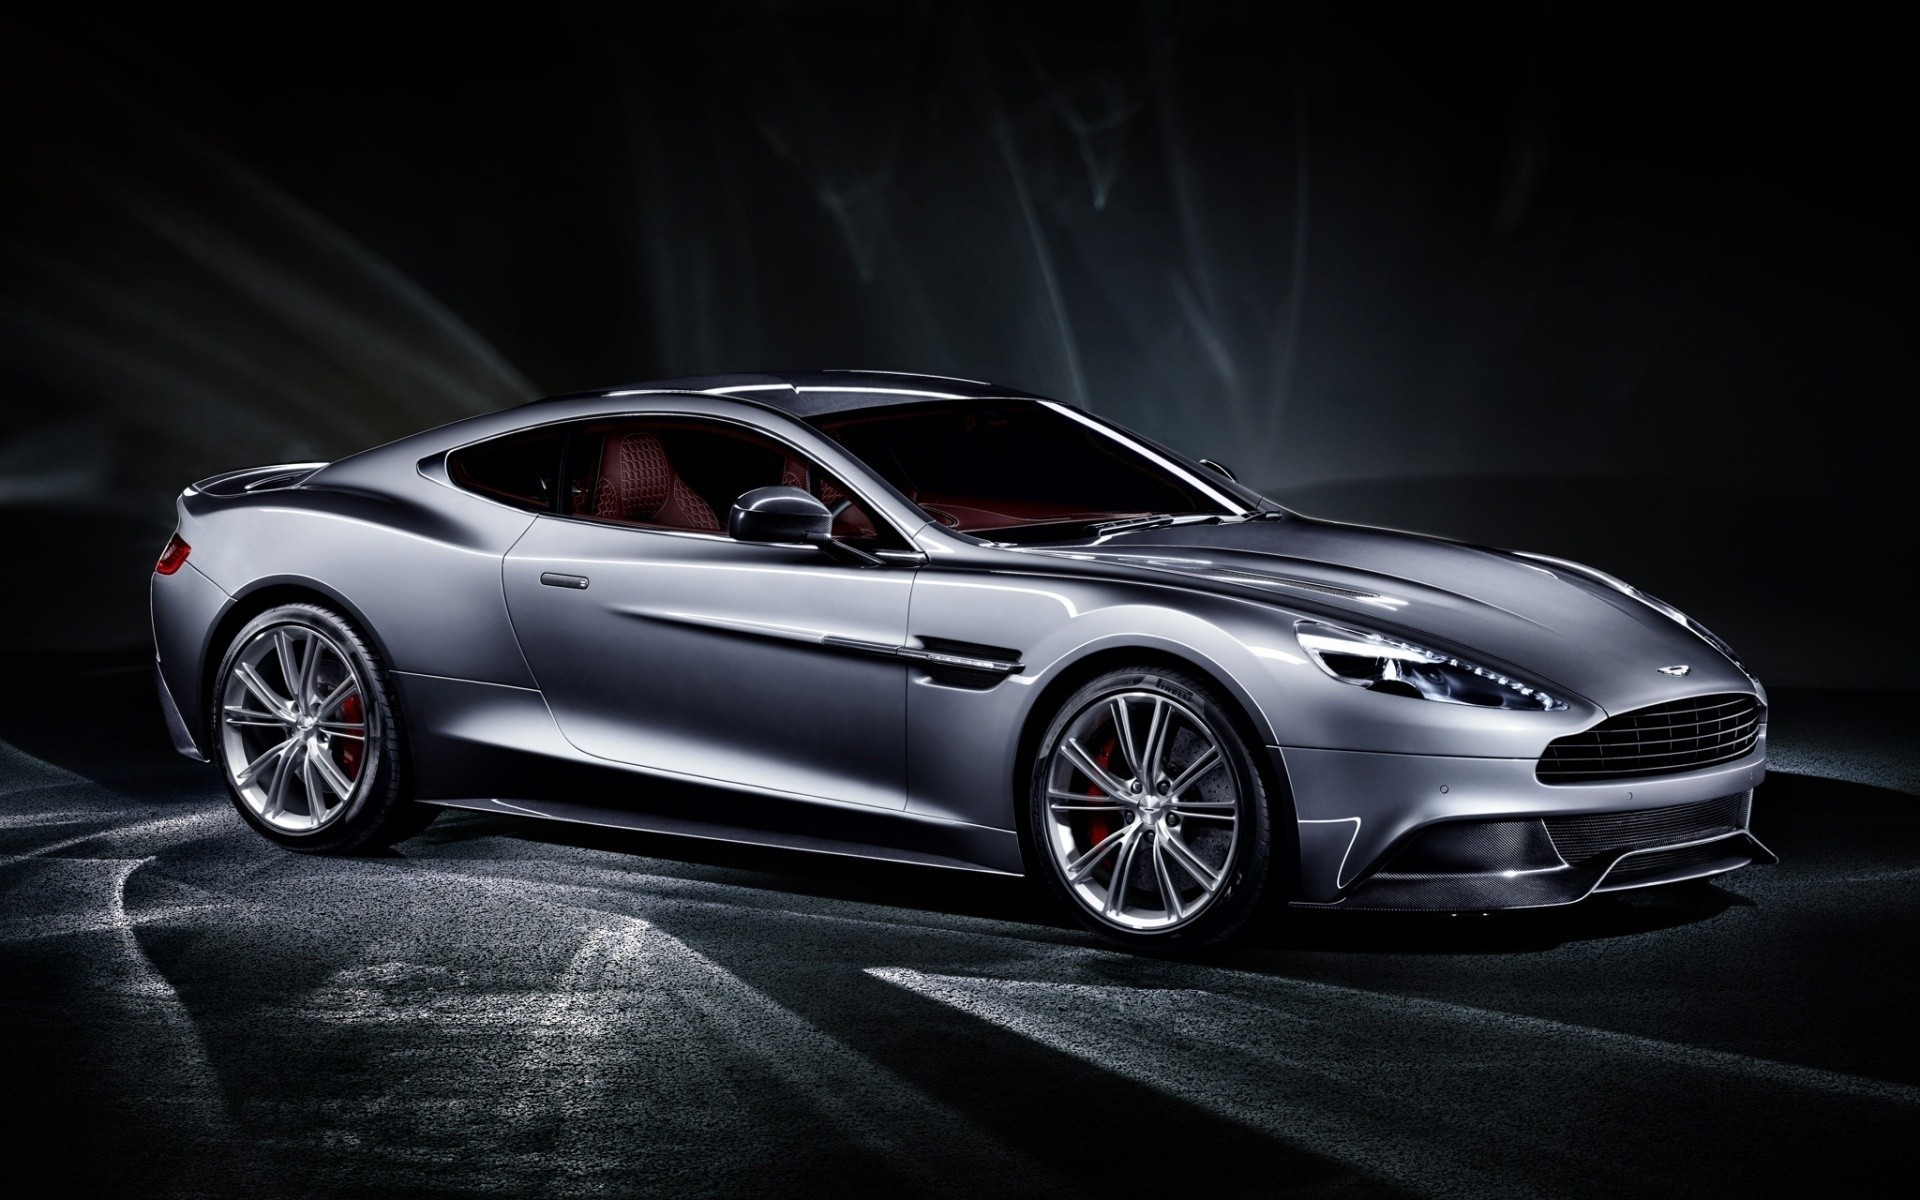 Cars exotic aston martin wallpaper